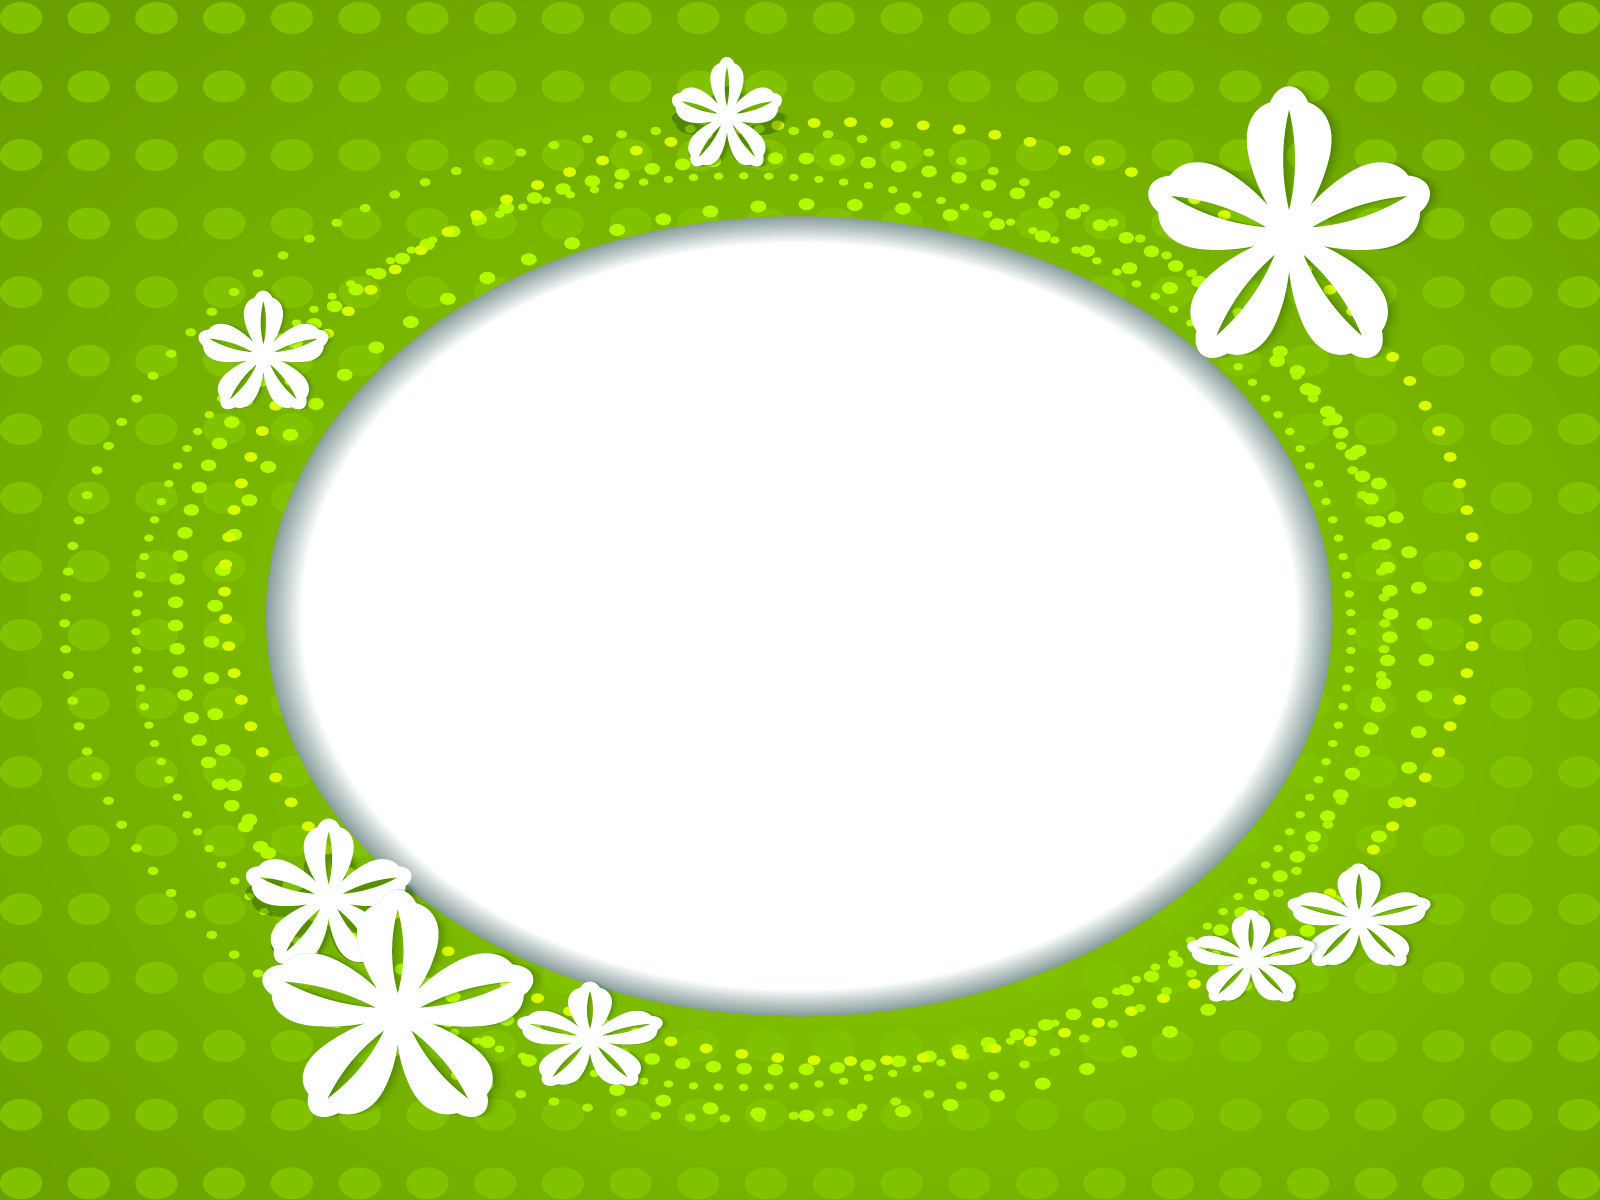 White Flower PPT Backgrounds